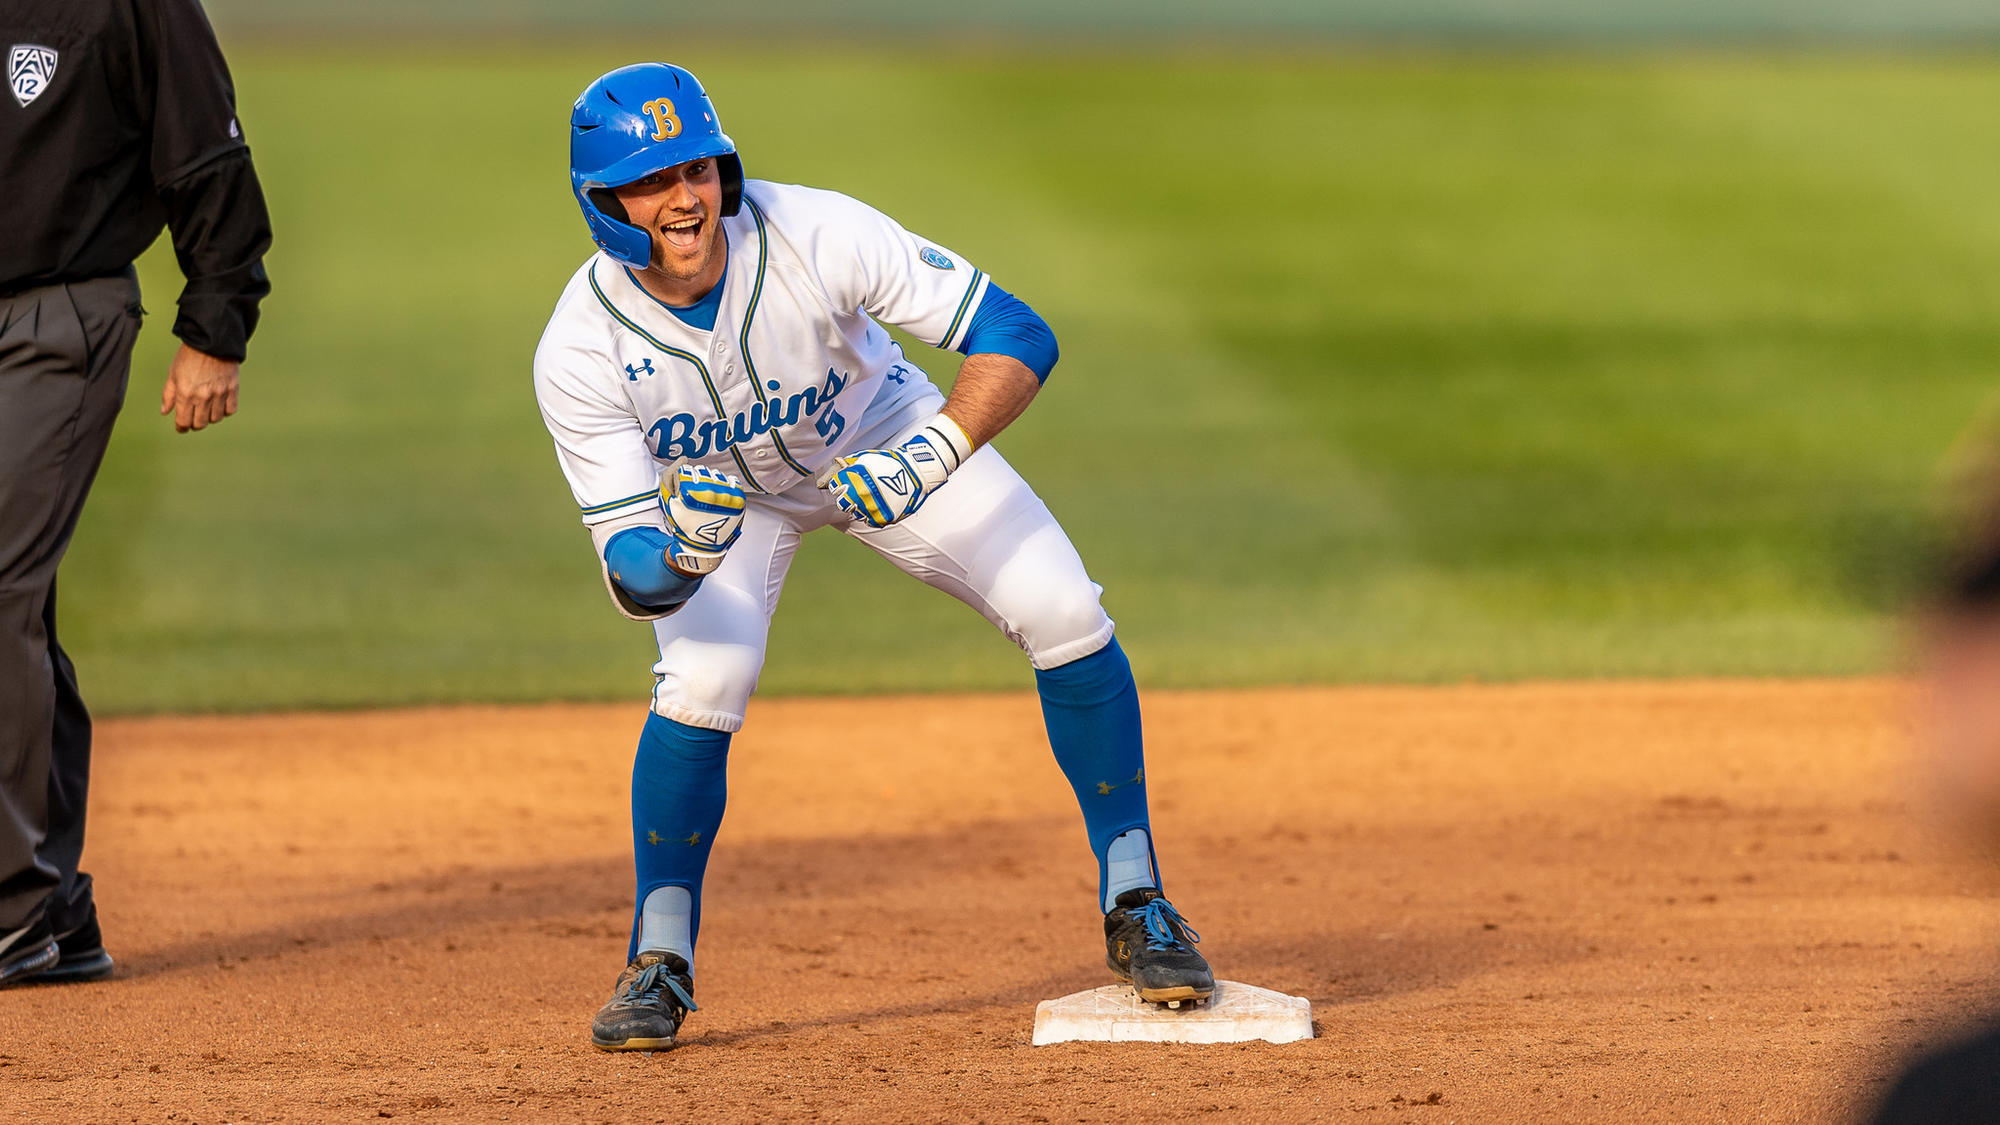 No. 1 UCLA takes over first place in Pac-12 baseball behind Garrett Mitchell